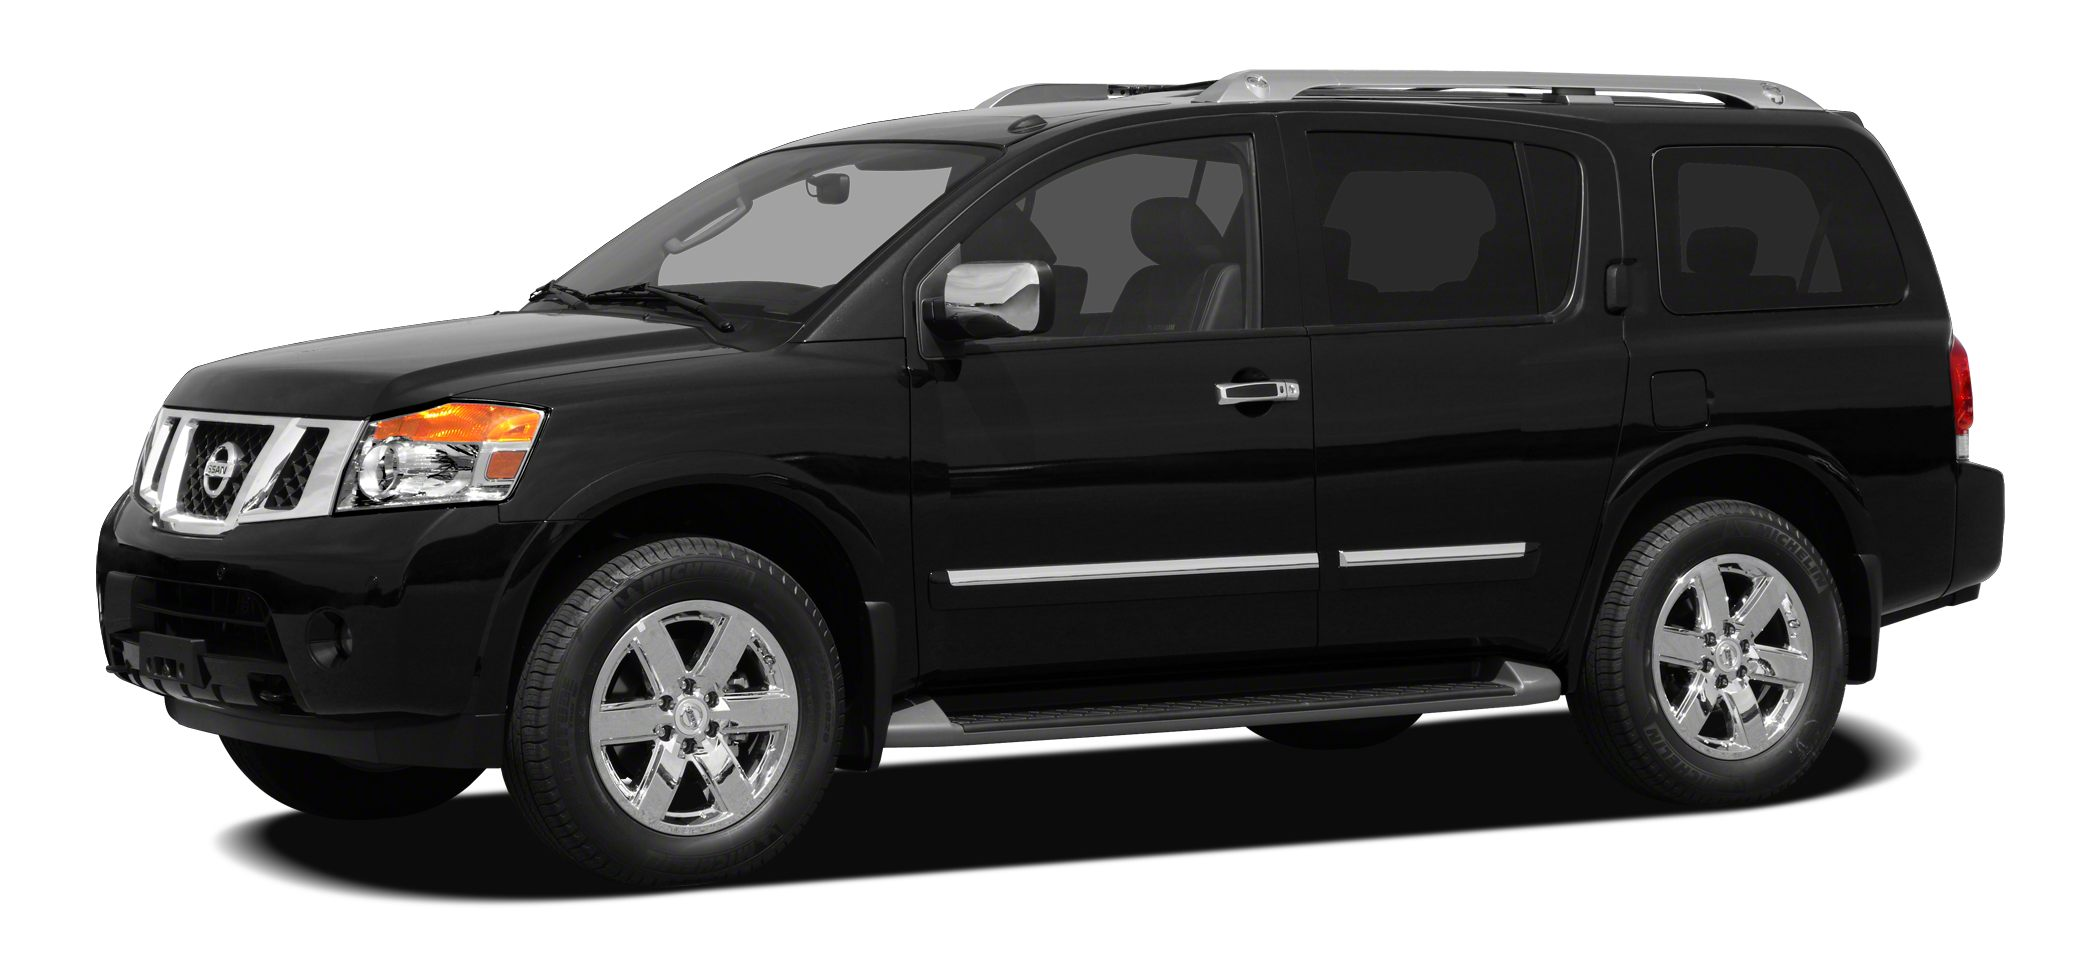 2012 Nissan Armada SV Here at Lake Keowee Ford our customers come first and our prices will not be